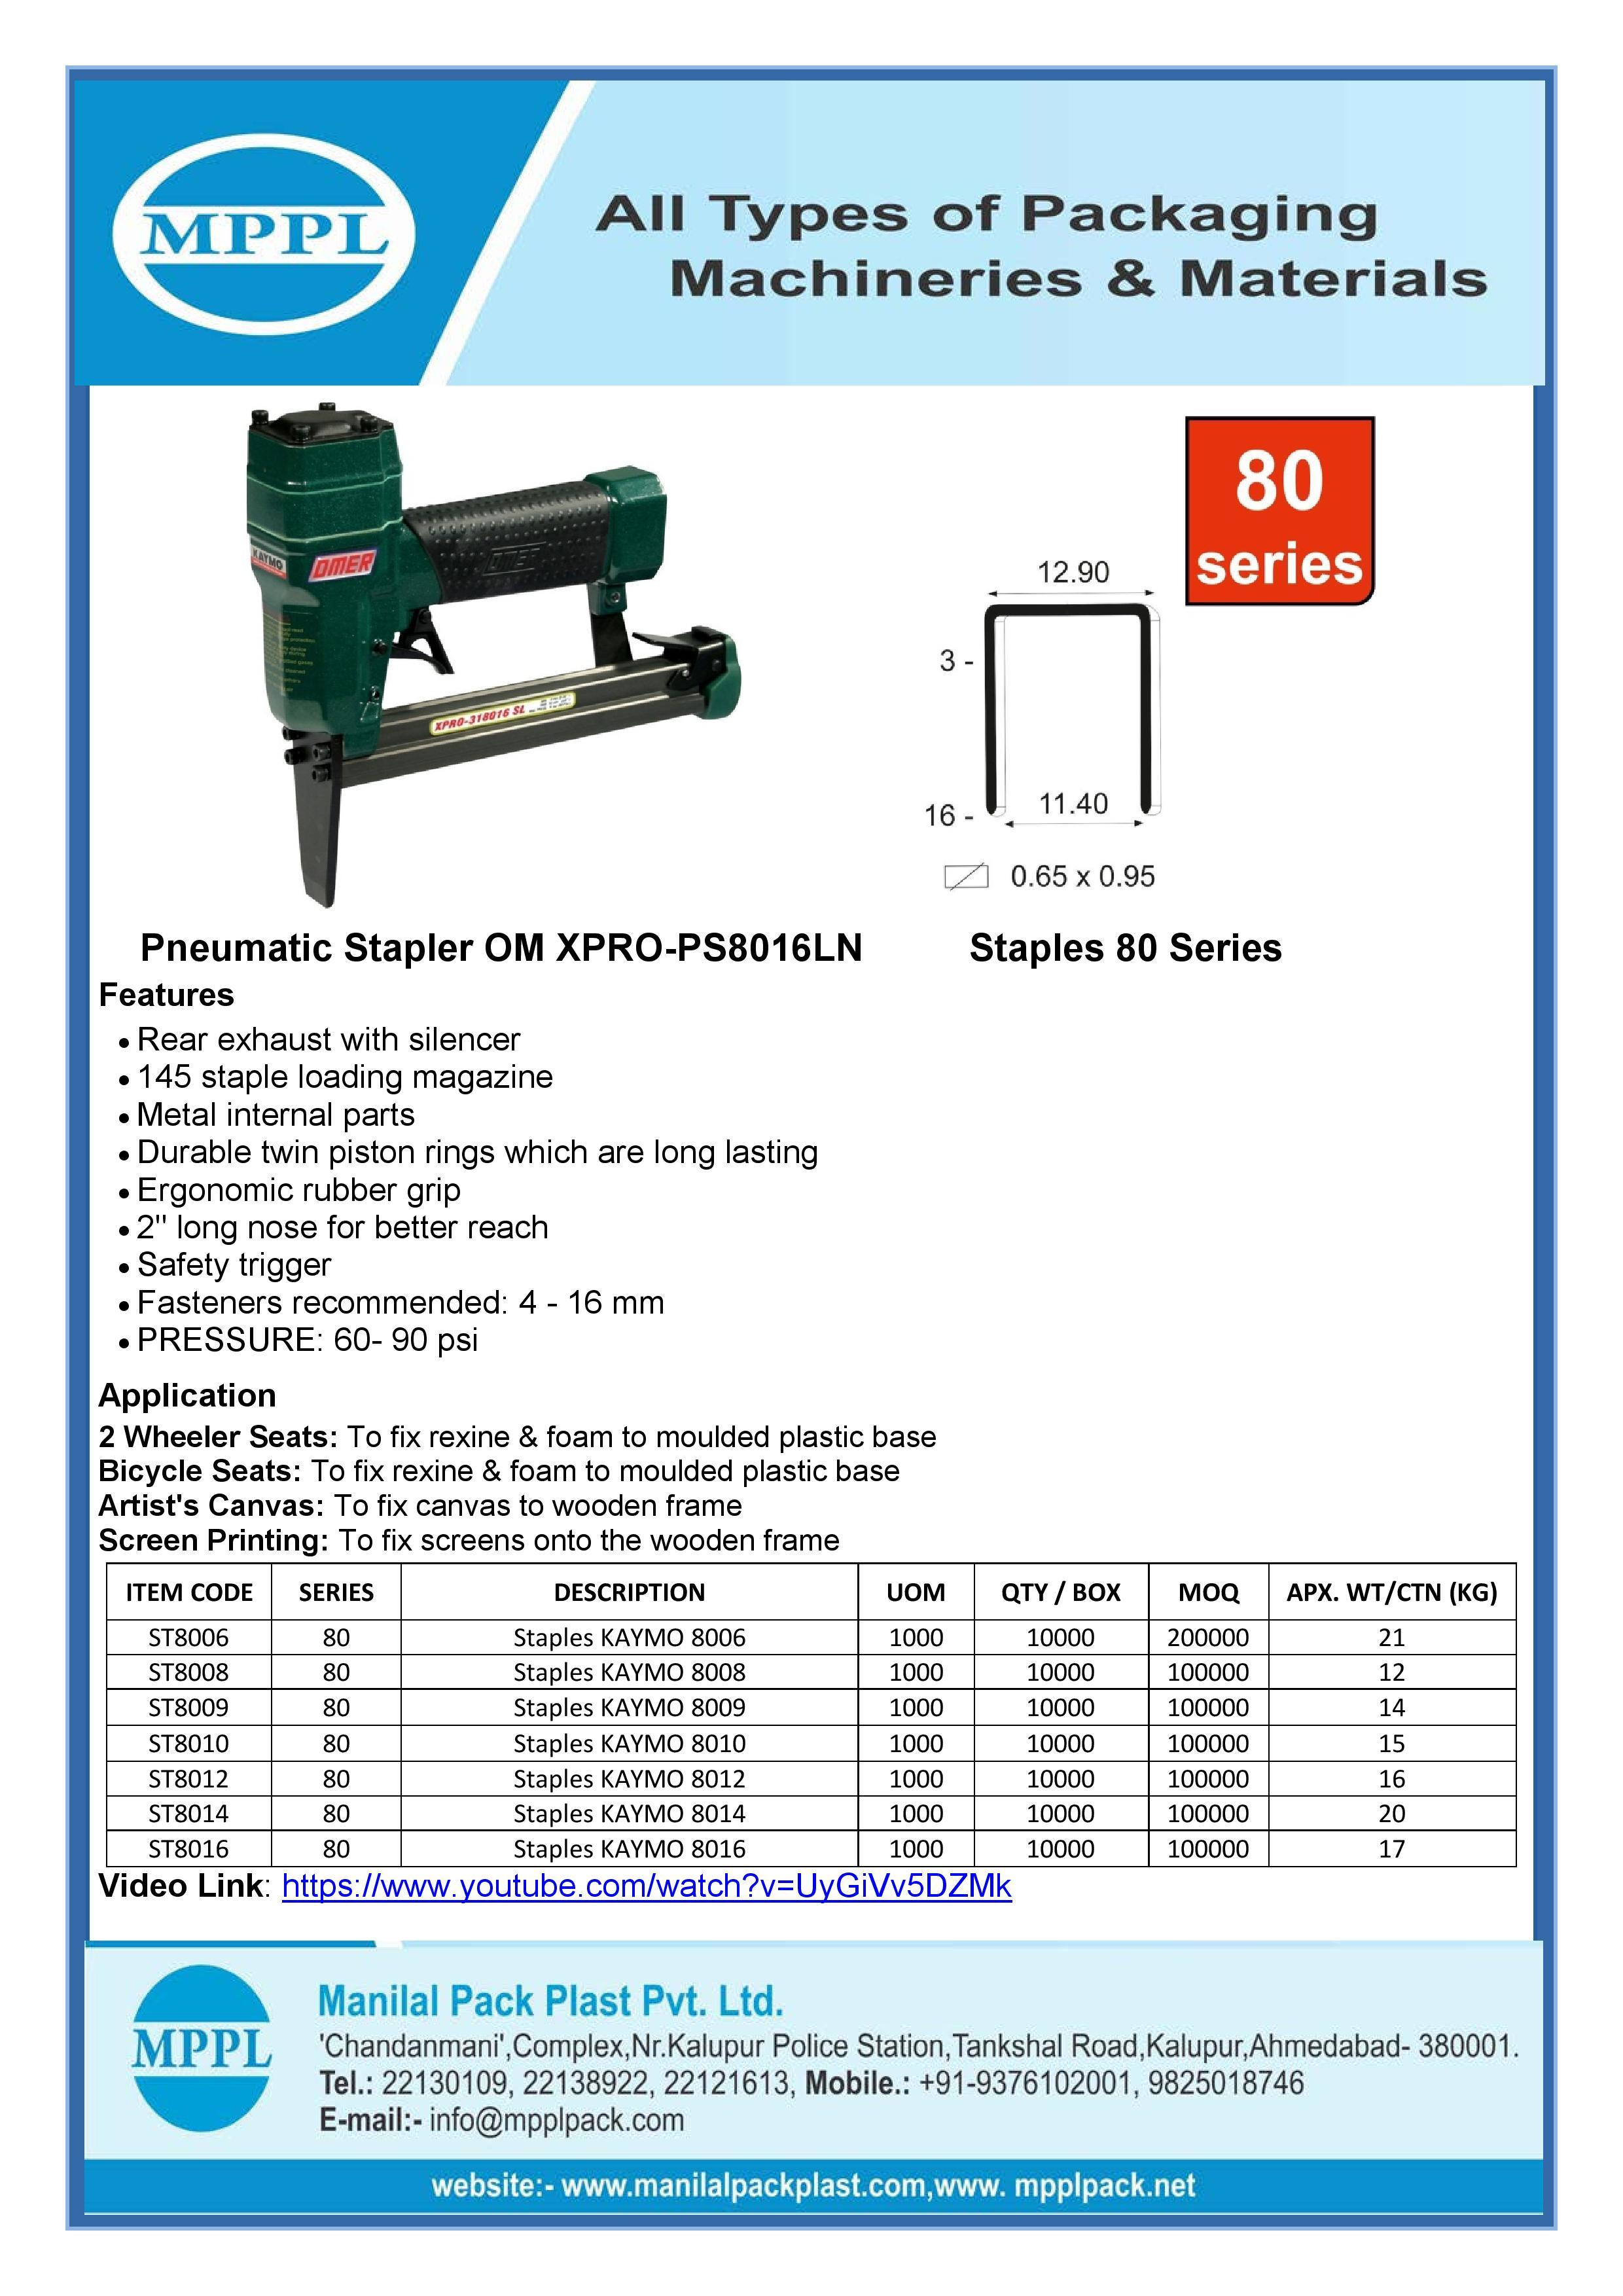 Pneumatic Stapler OM XPRO-PS8016LN